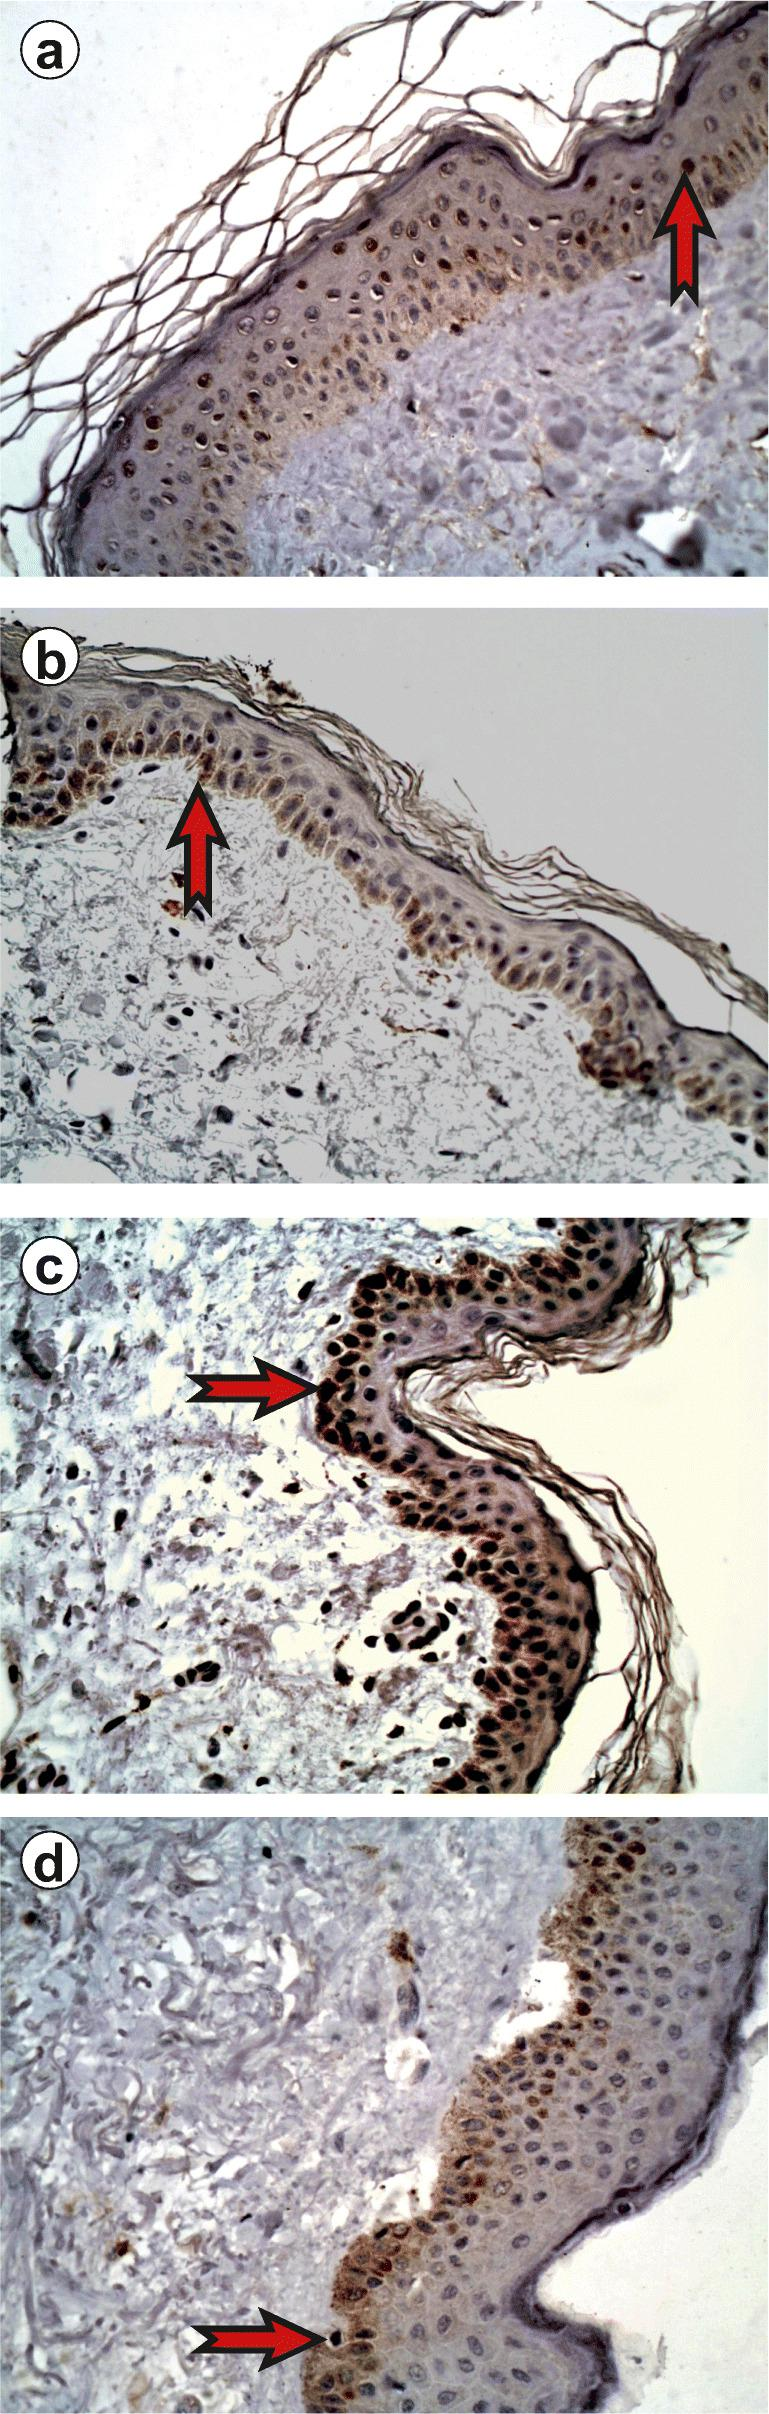 Immunoexpression of JAK/STAT proteins in the epidermis, normal skin, × 400. a Immunoexpression of JAK3 in the epidermis, normal skin, 10.73 ± 3.36. b Immunoexpression of STAT2 in the epidermis, normal skin, 11.06 ± 5.34. c Immunoexpression of STAT4 in the epidermis, normal skin, 18.59 ± 3.01. d Immunoexpression of STAT6 in the epidermis, normal skin, 11.56 ± 2.84